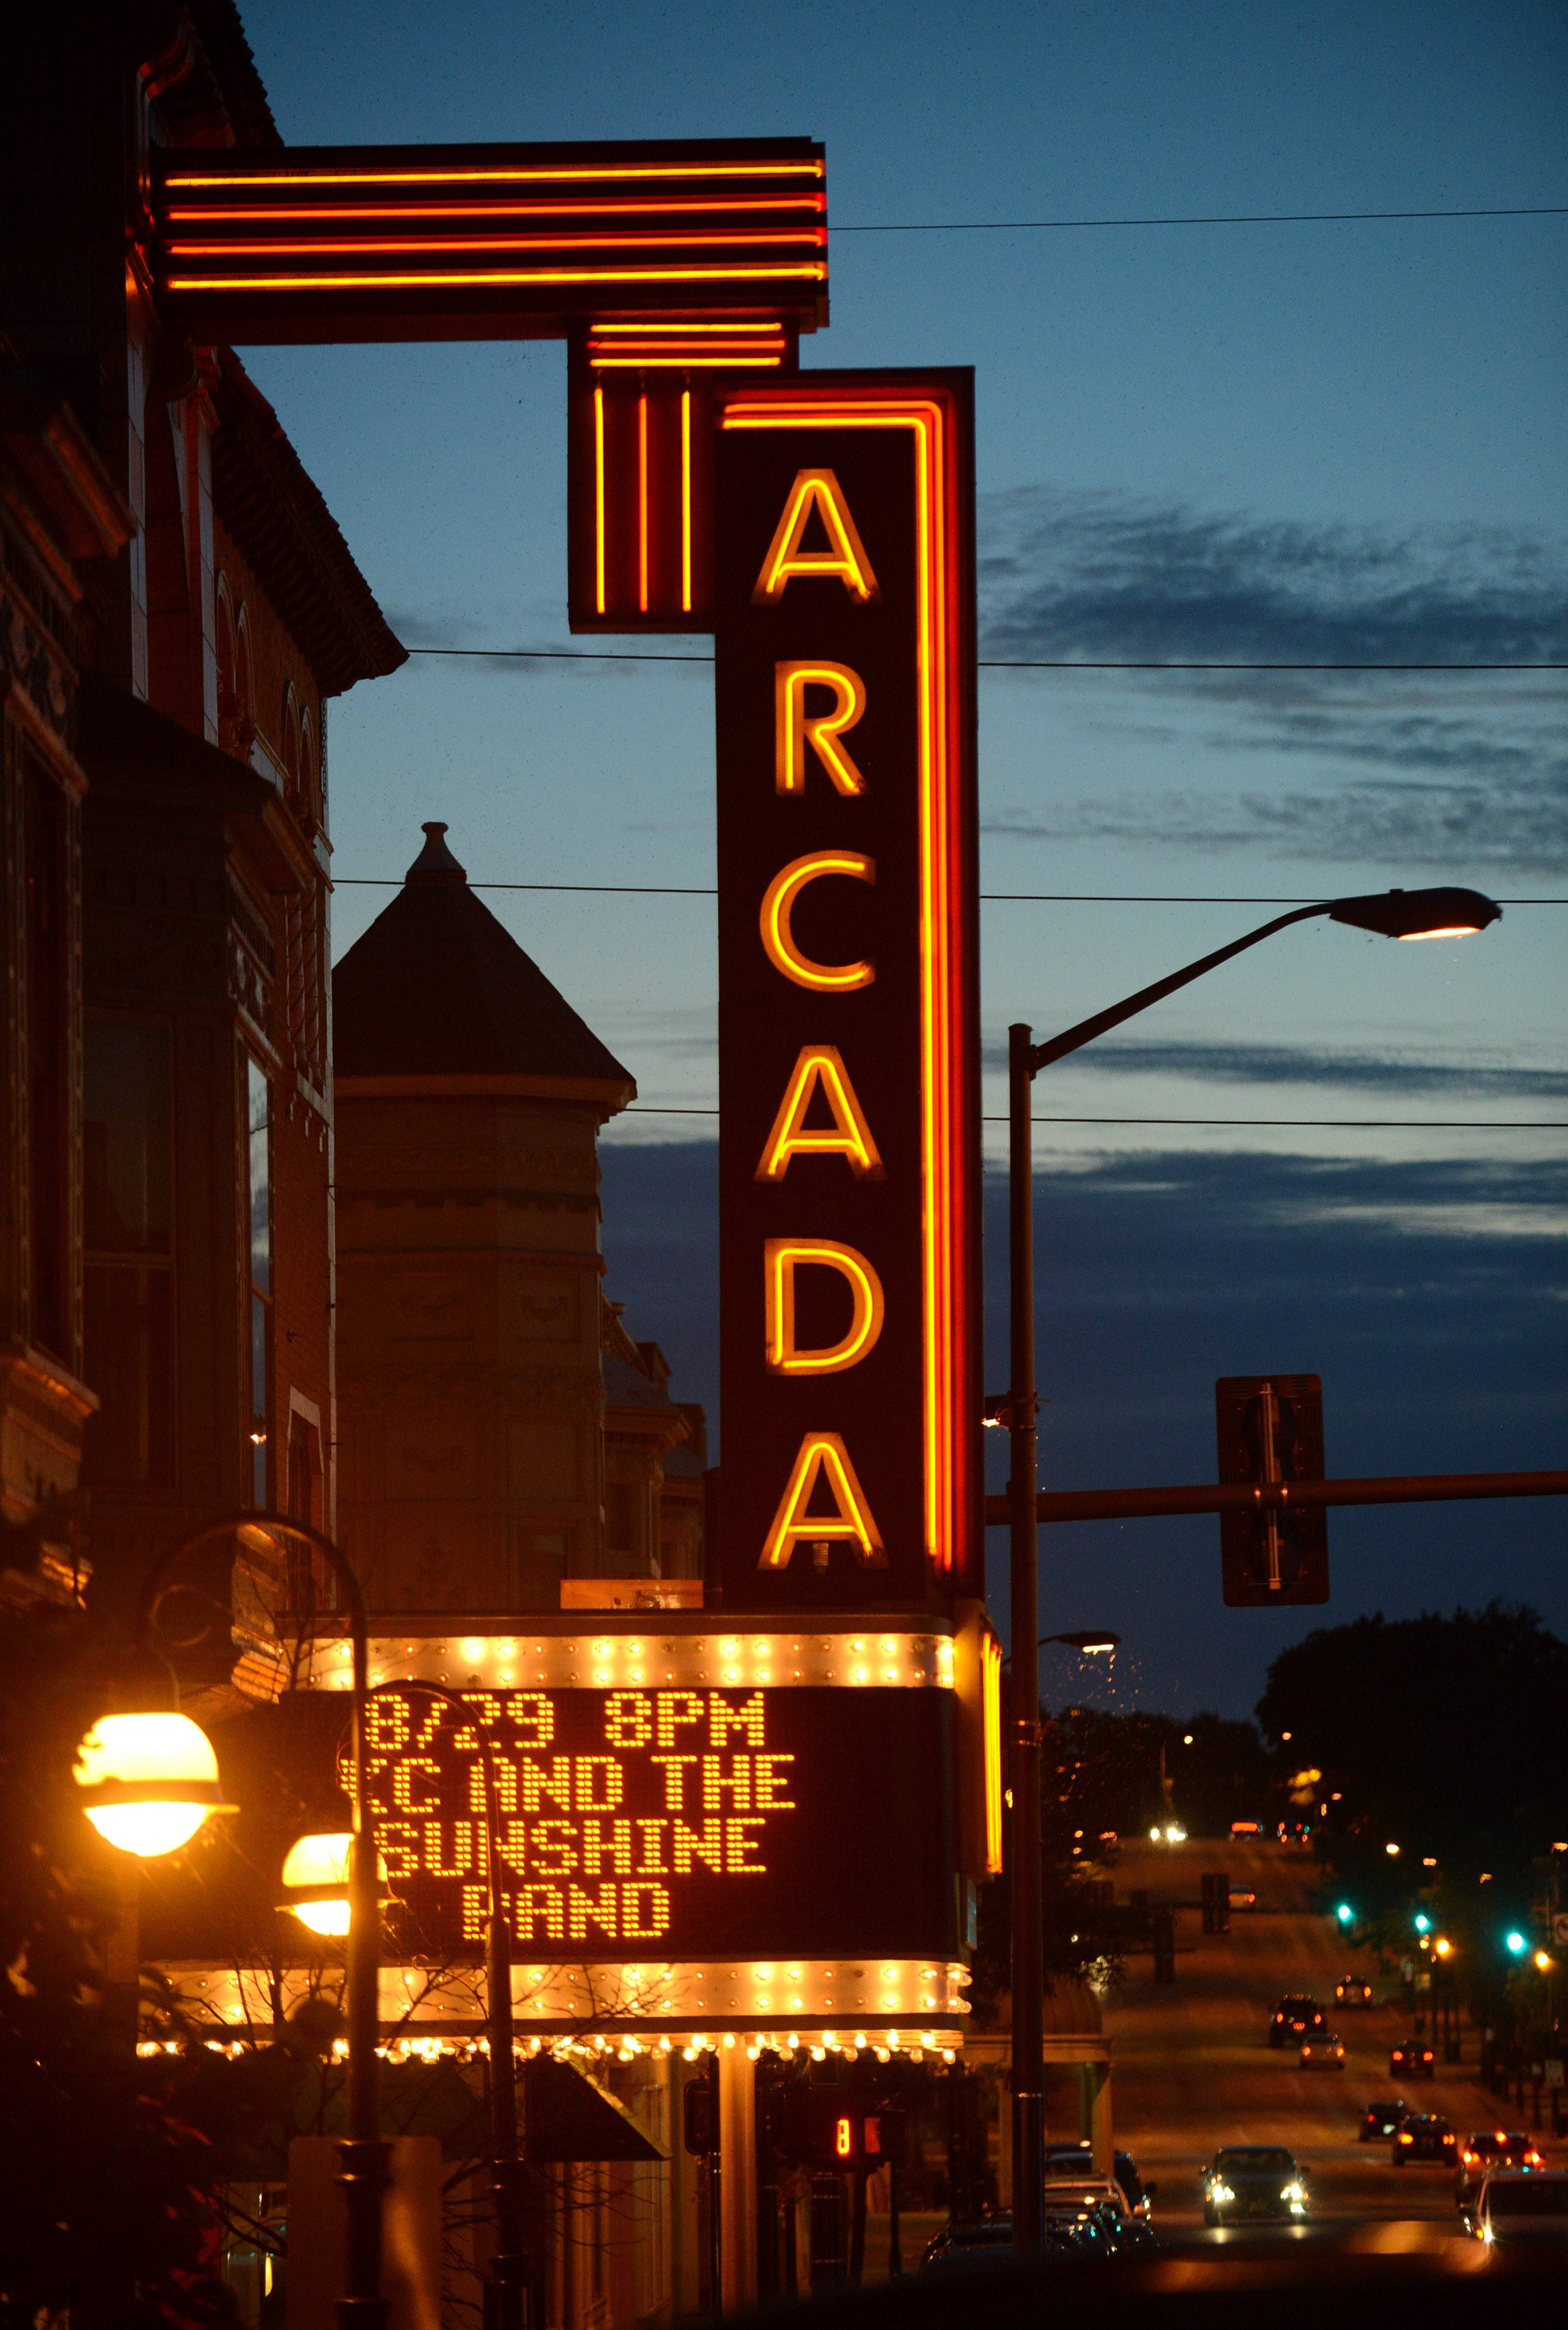 The Arcada Theatre in St. Charles has shown success in booking a couple hundred shows at the downtown venue.